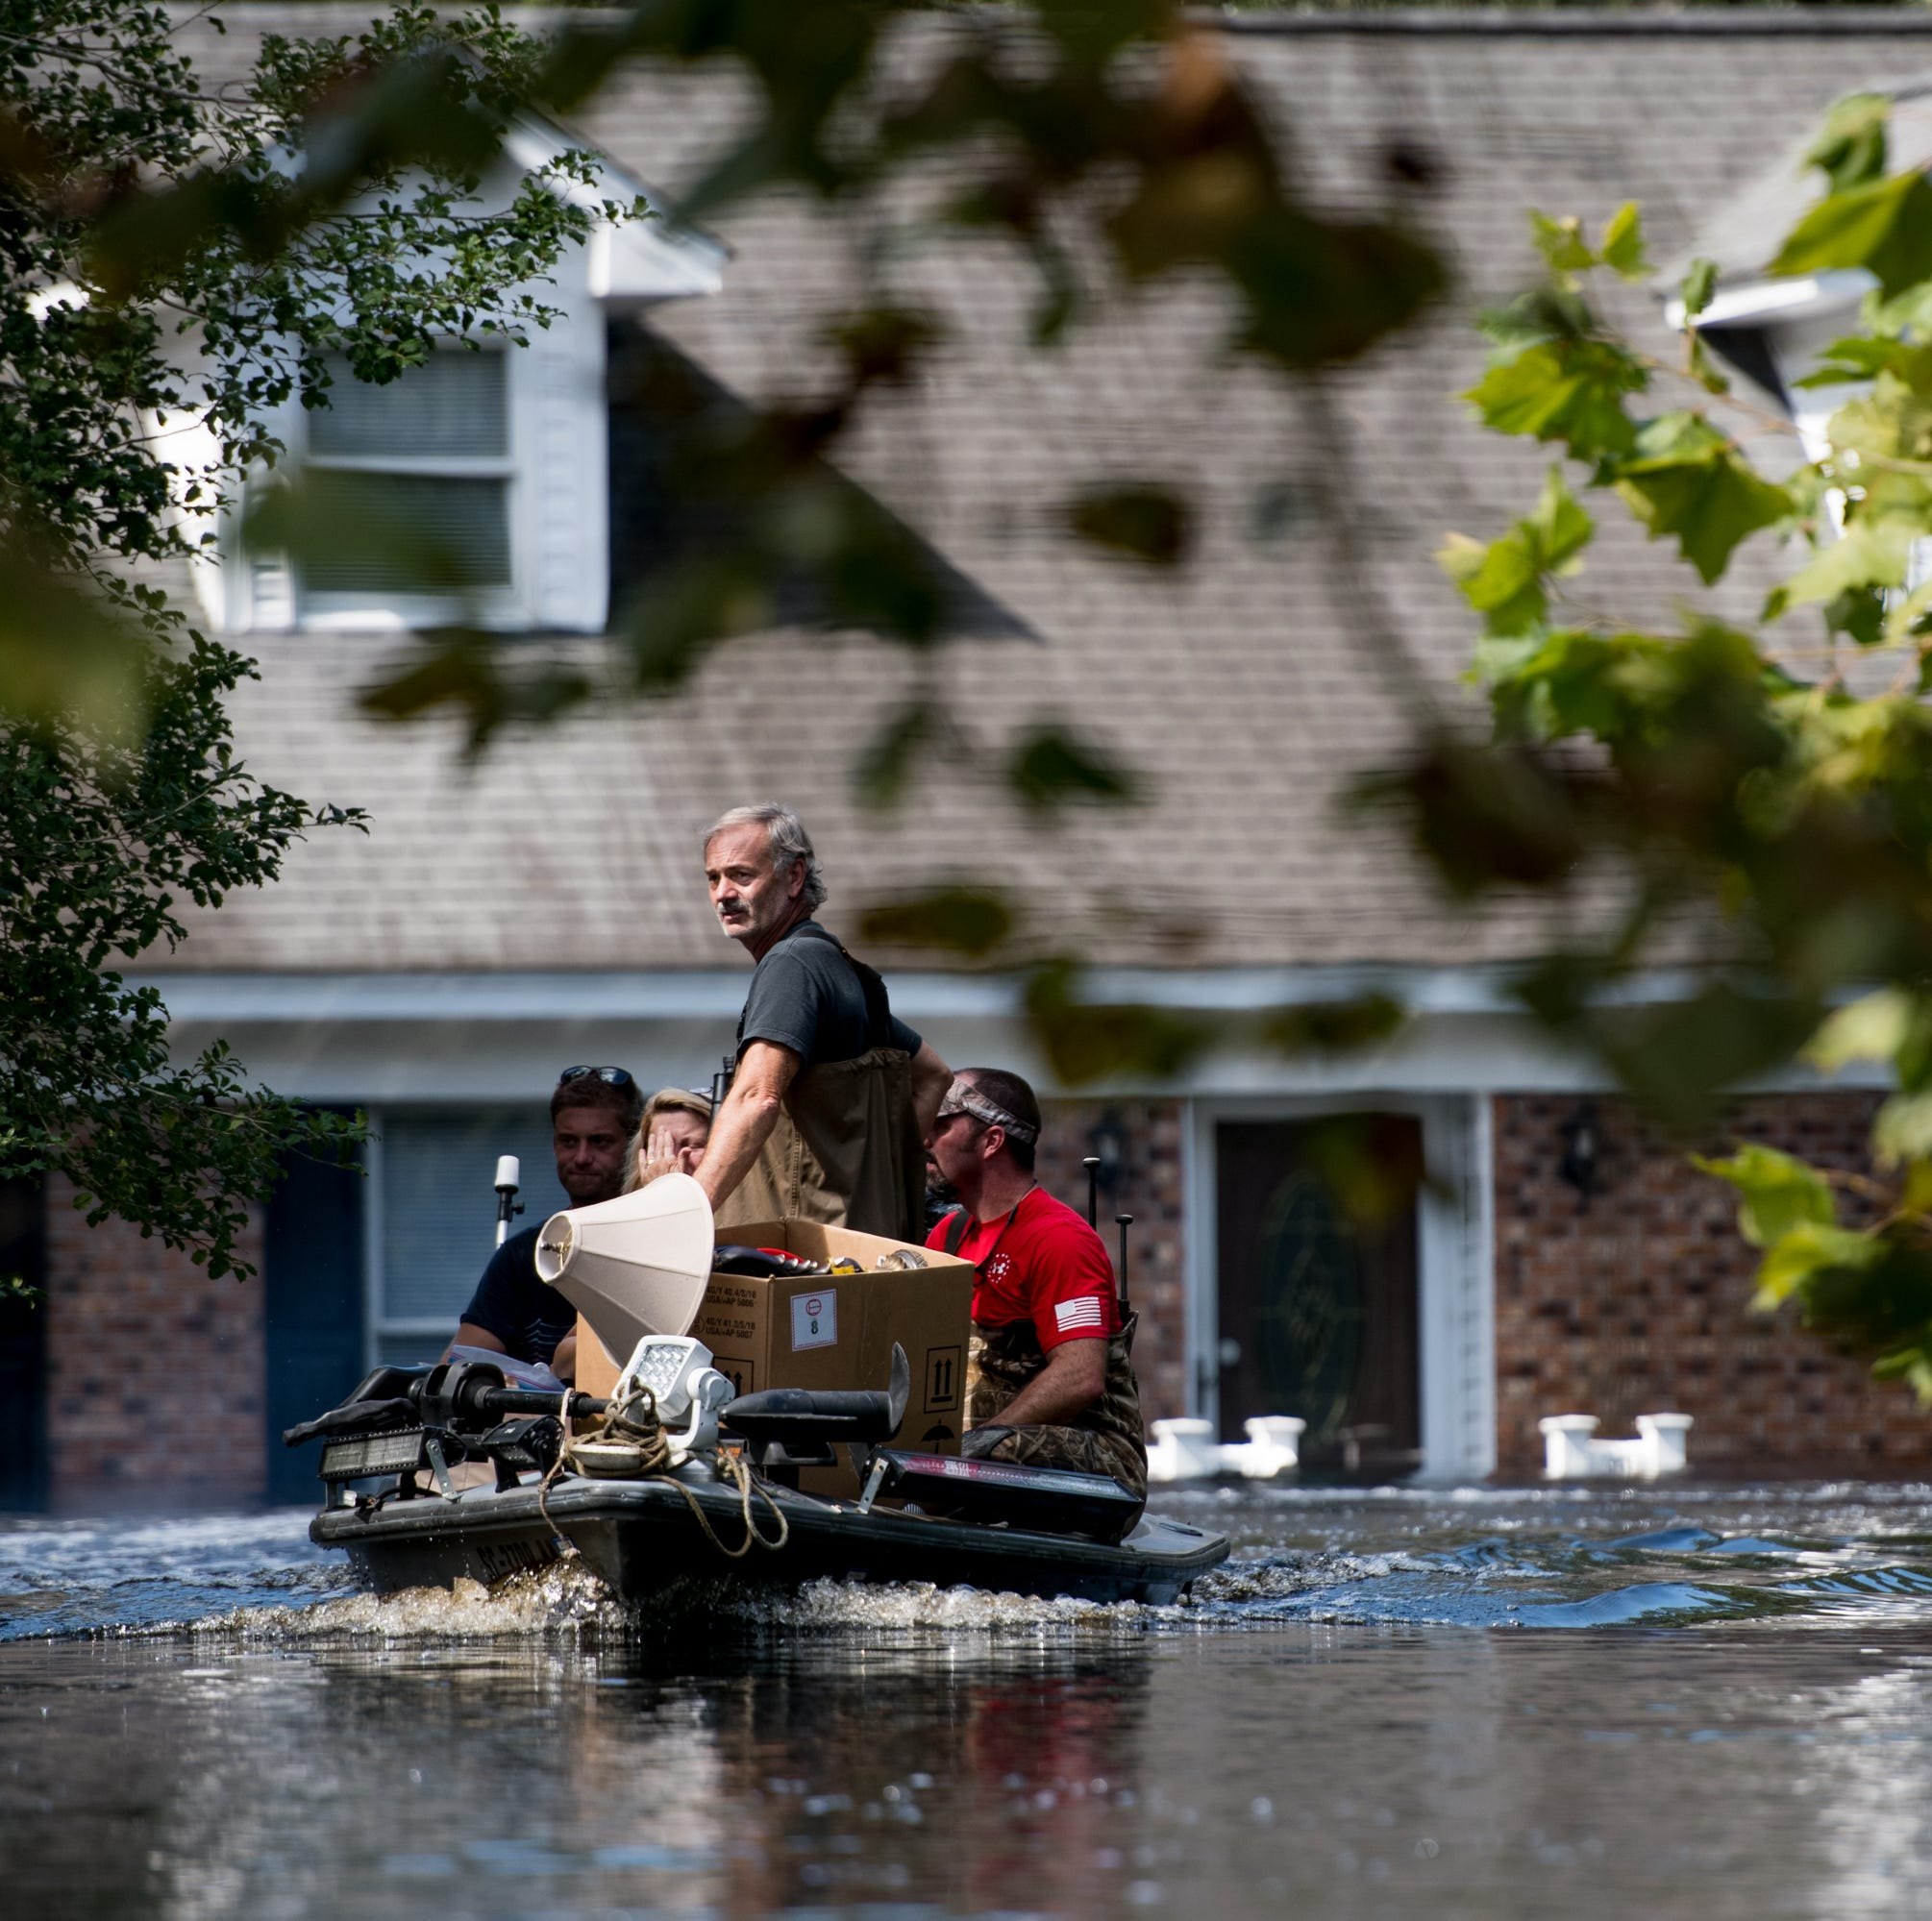 Hurricane Florence hit 10 days ago, and still hundreds of roads remain closed, thousands evacuated